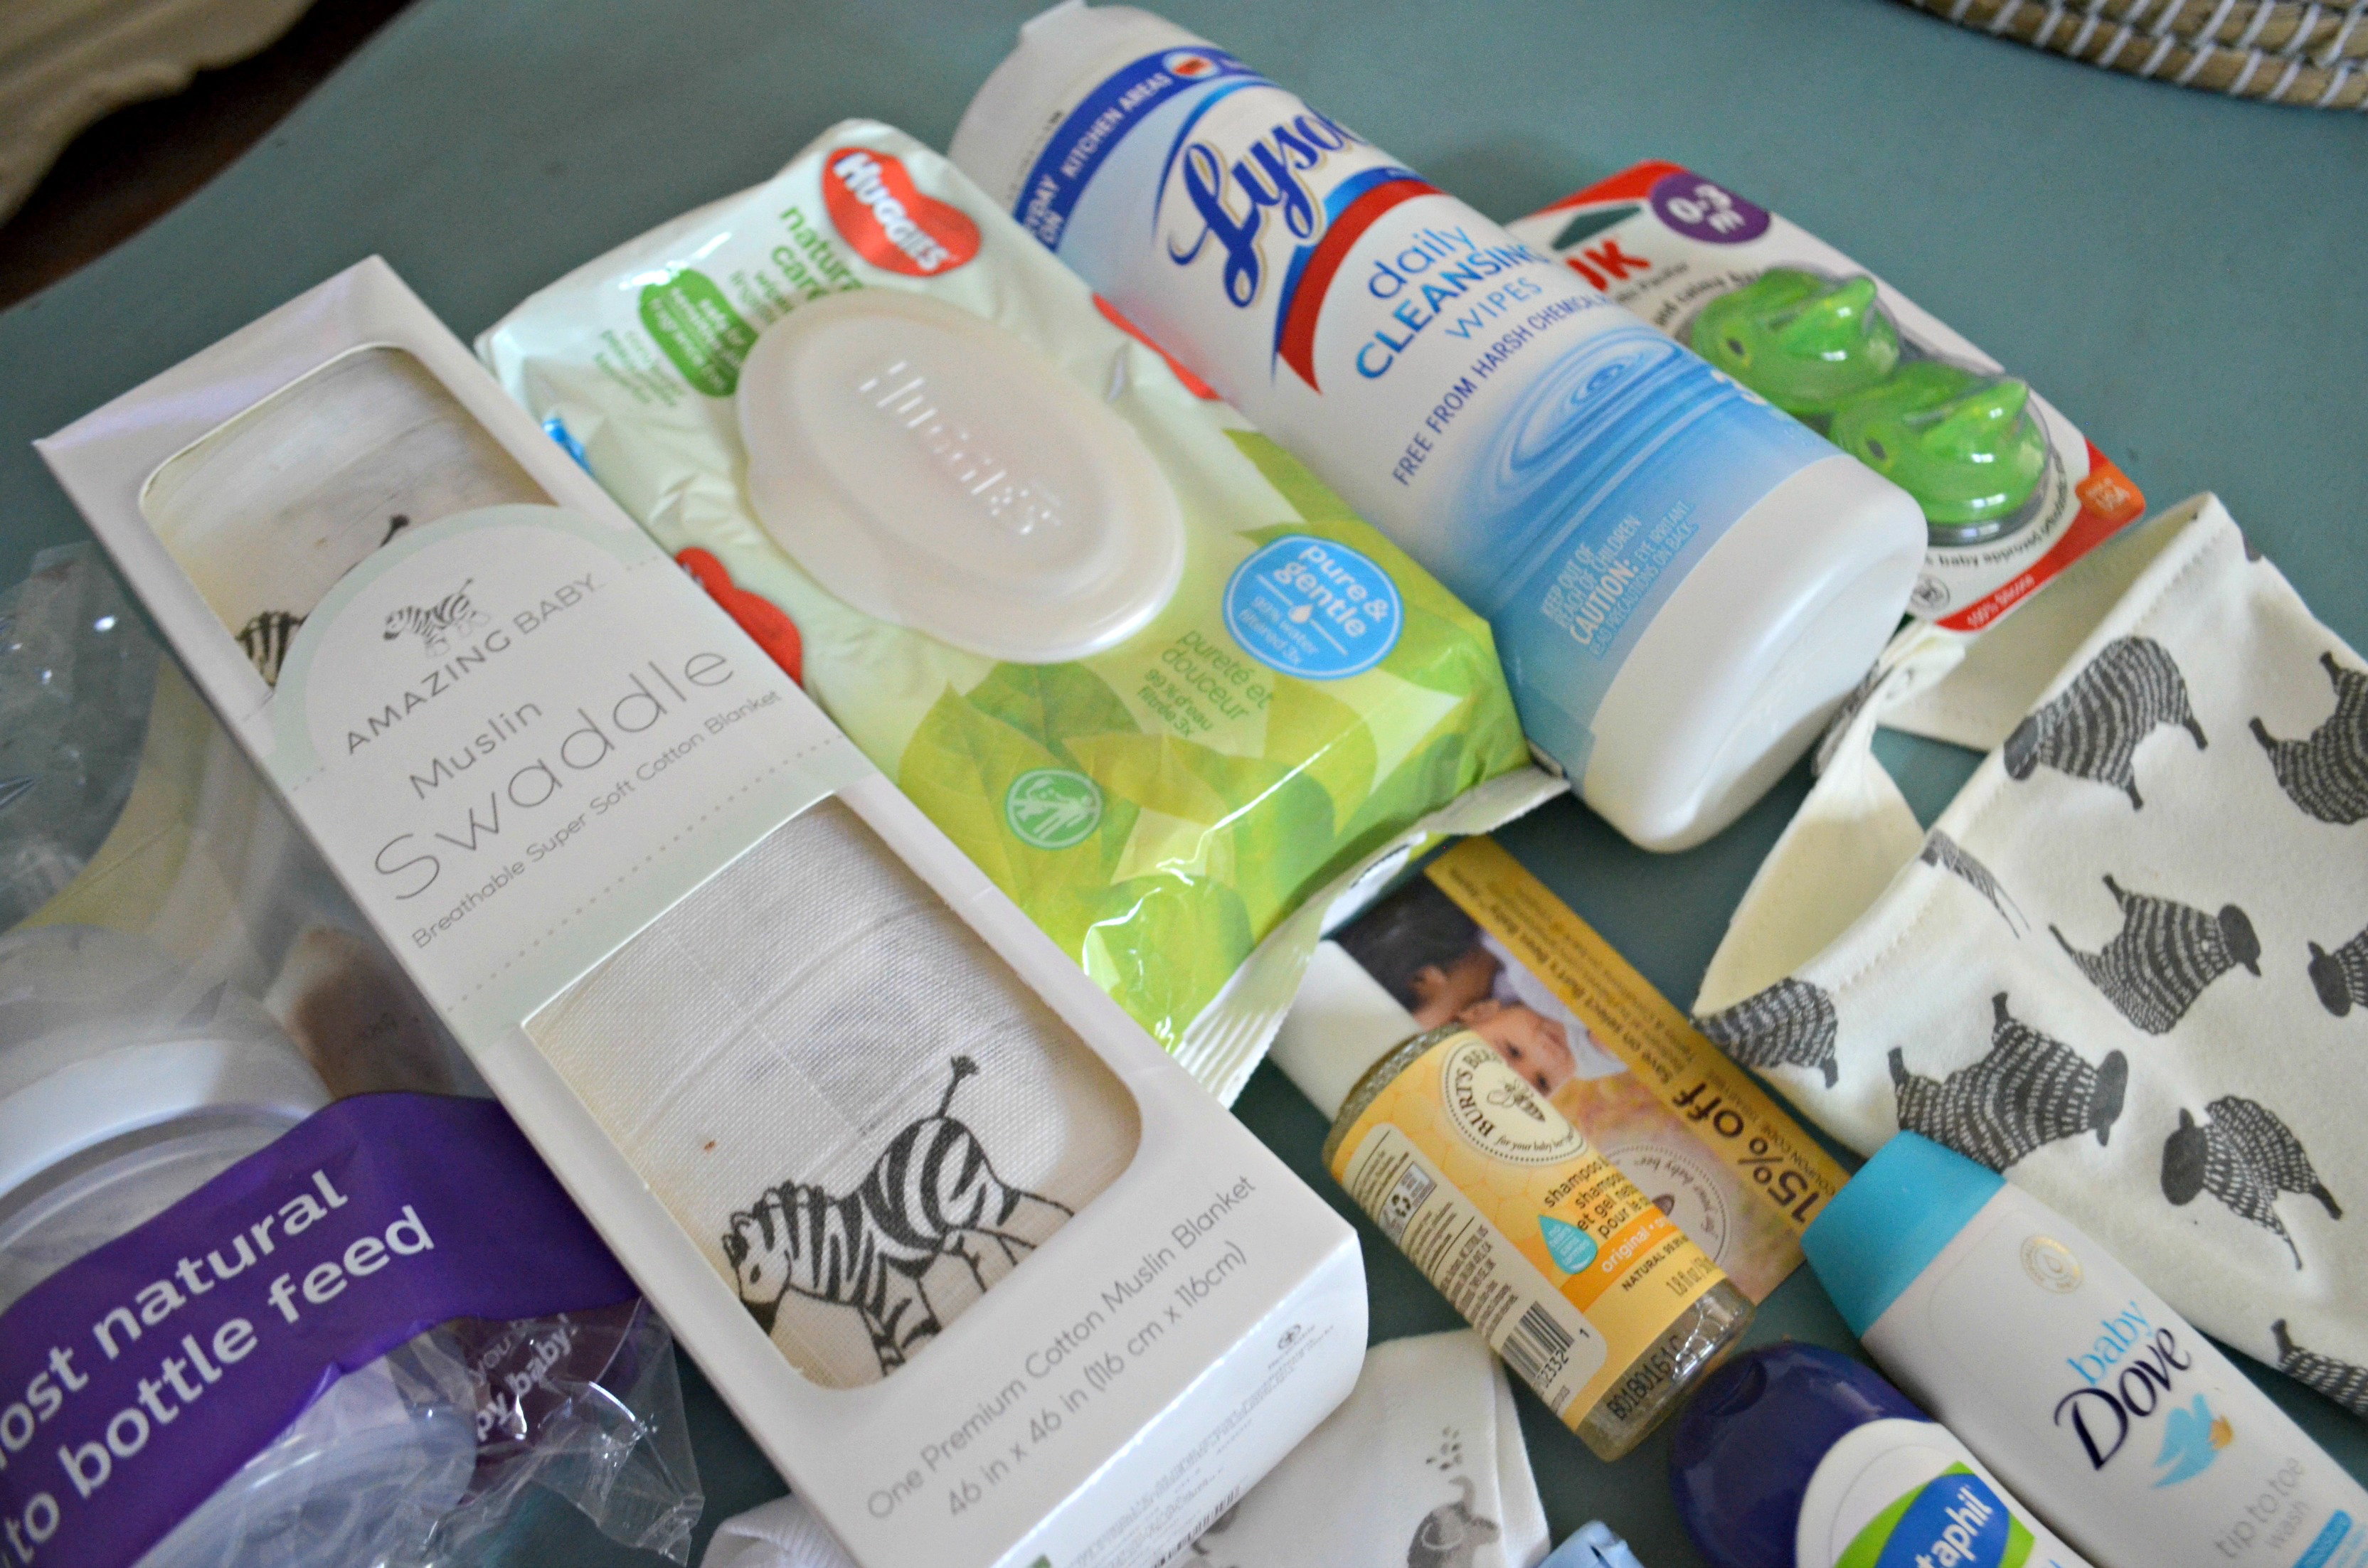 Pregnant Moms: Here's How to Score $35 in Brand Name Baby Freebies